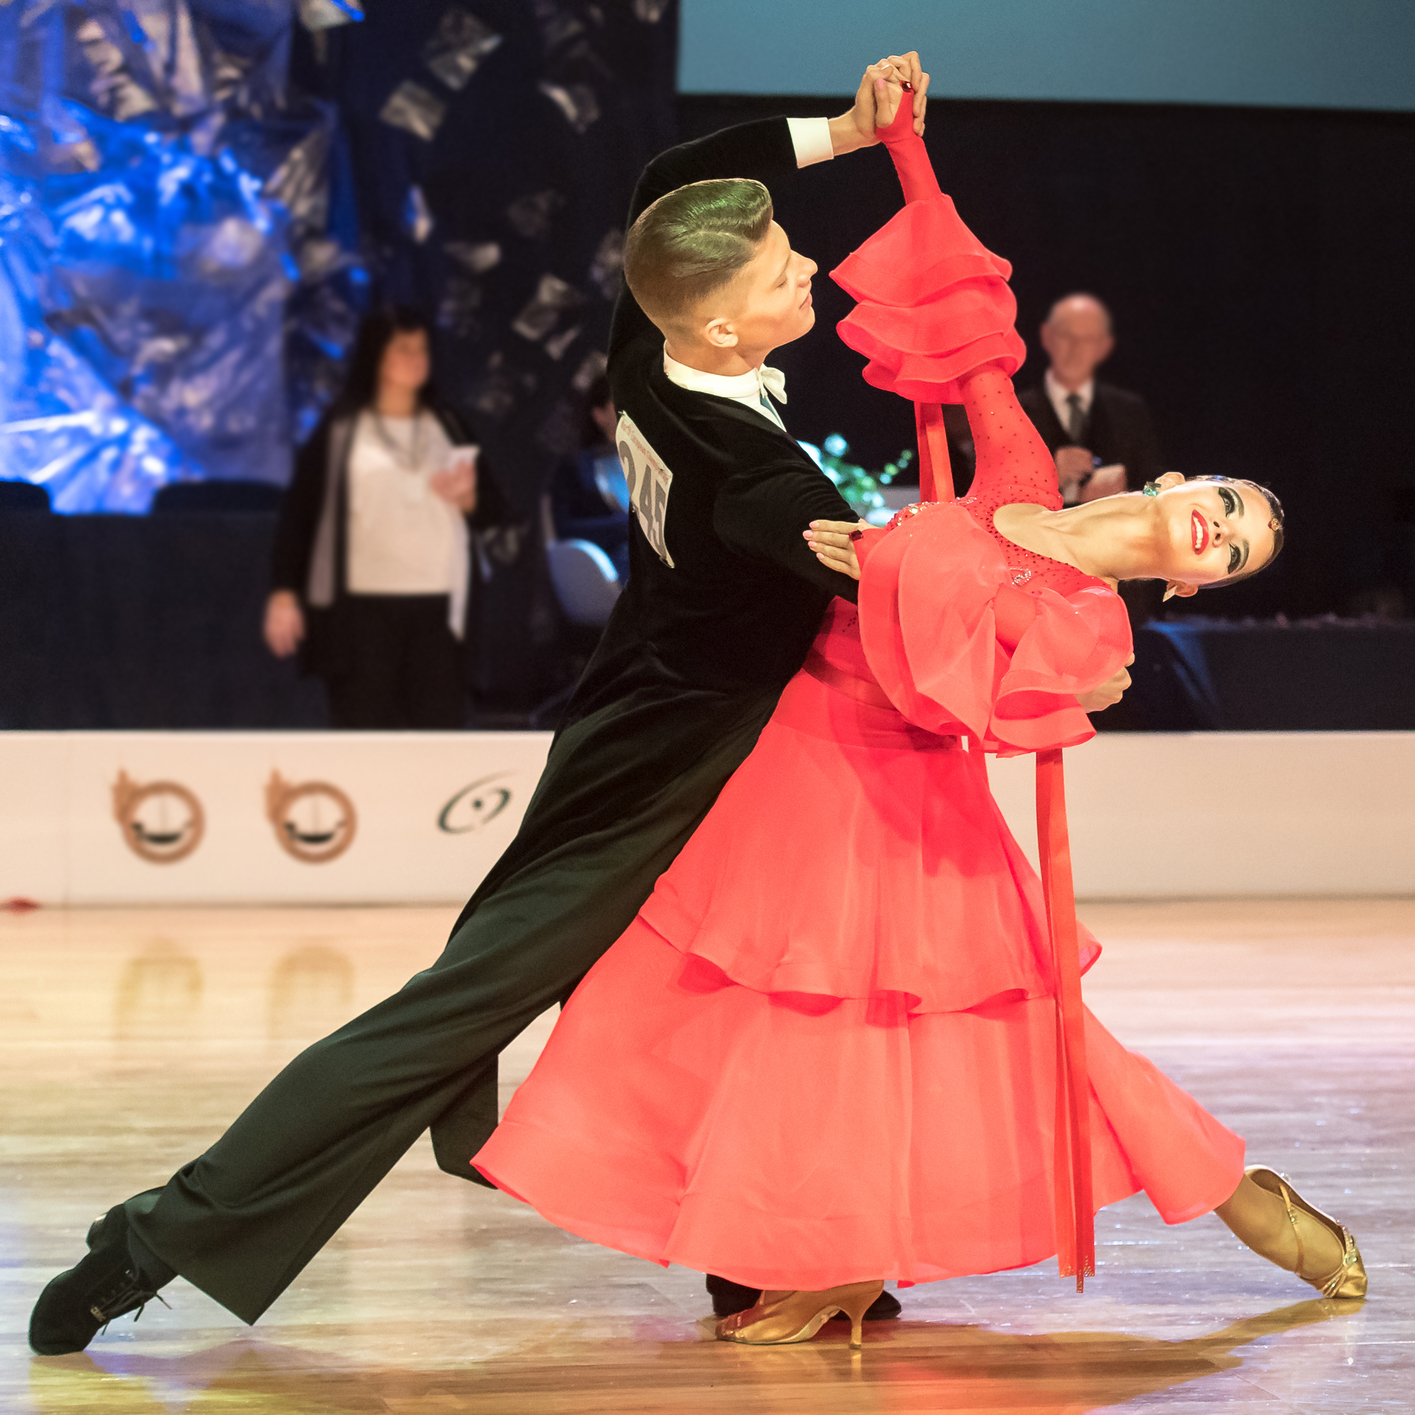 A competitive ballroom couple performing an oversway figure.